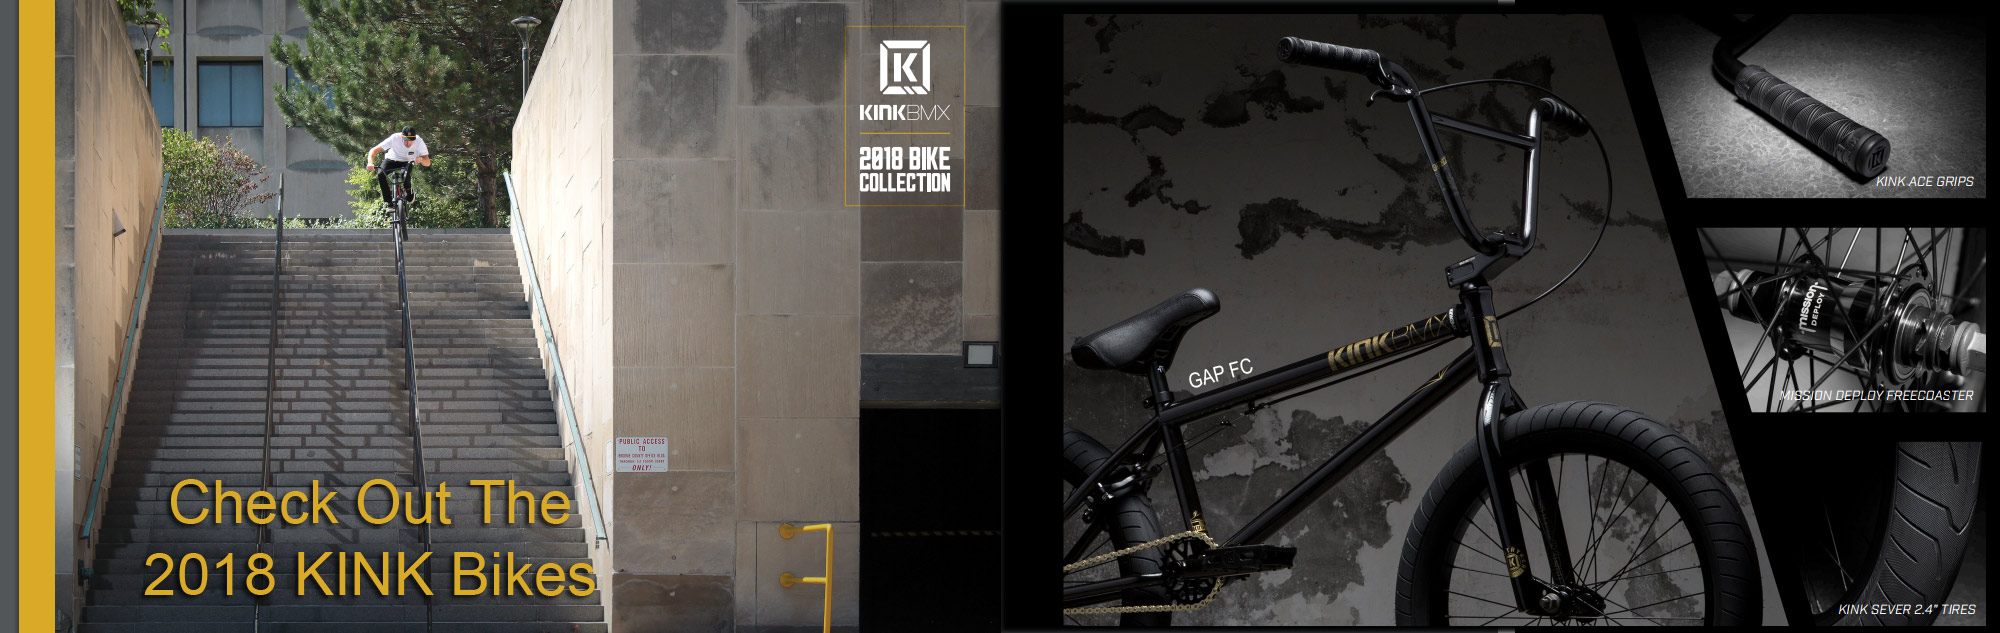 2018 Kink BMX Bikes Now Available at Albe's BMX Bike Shop